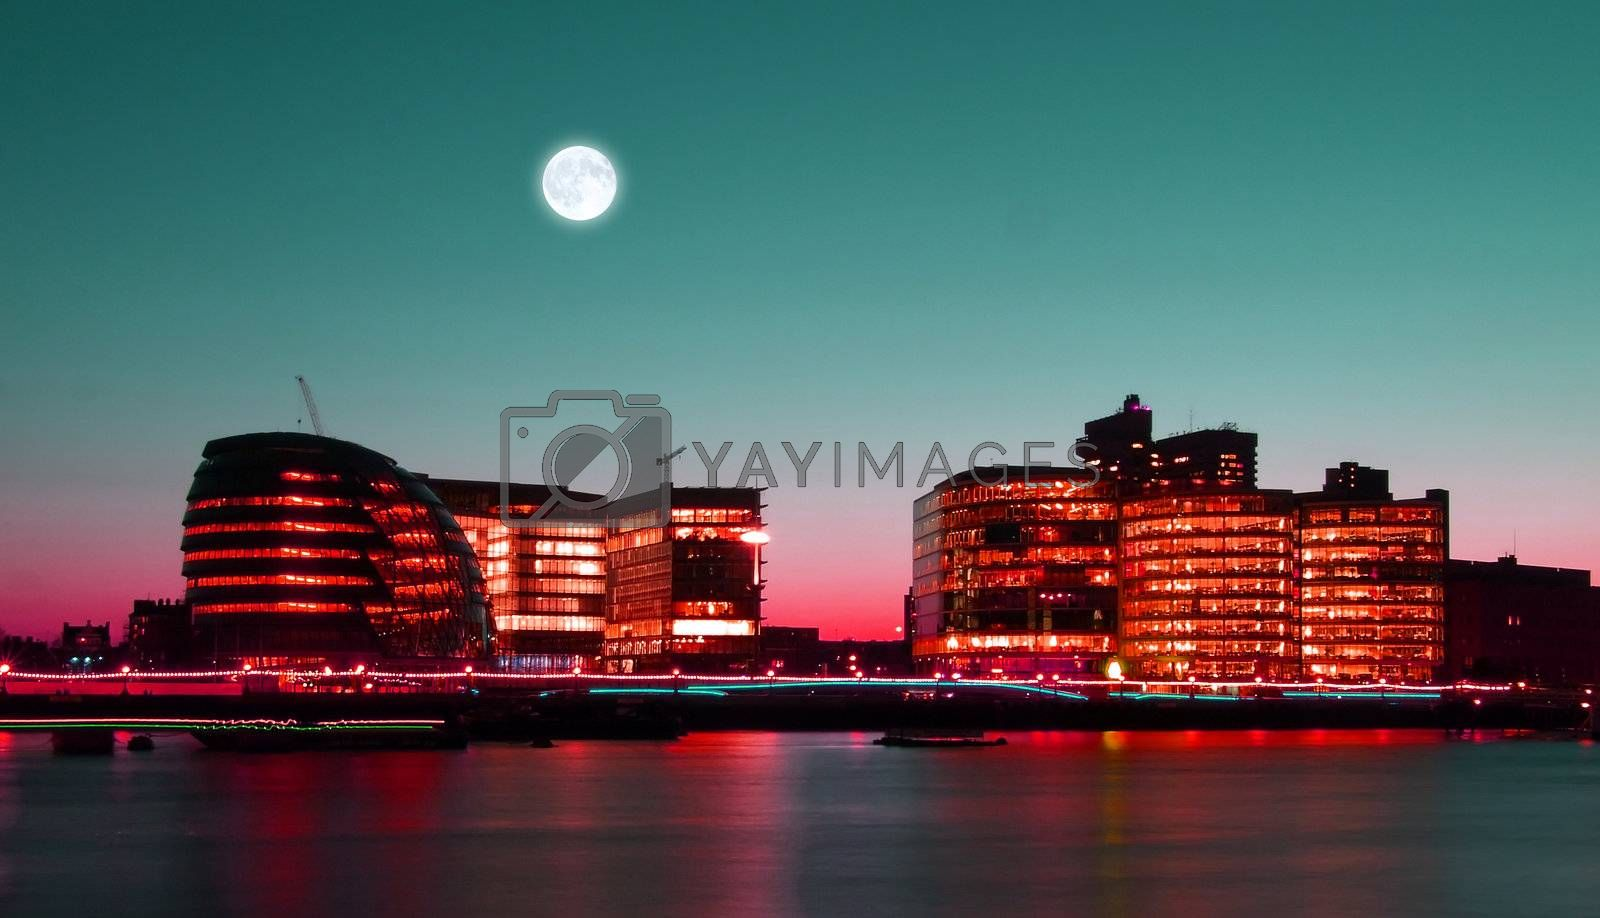 Office buildings on the bank of Thames River